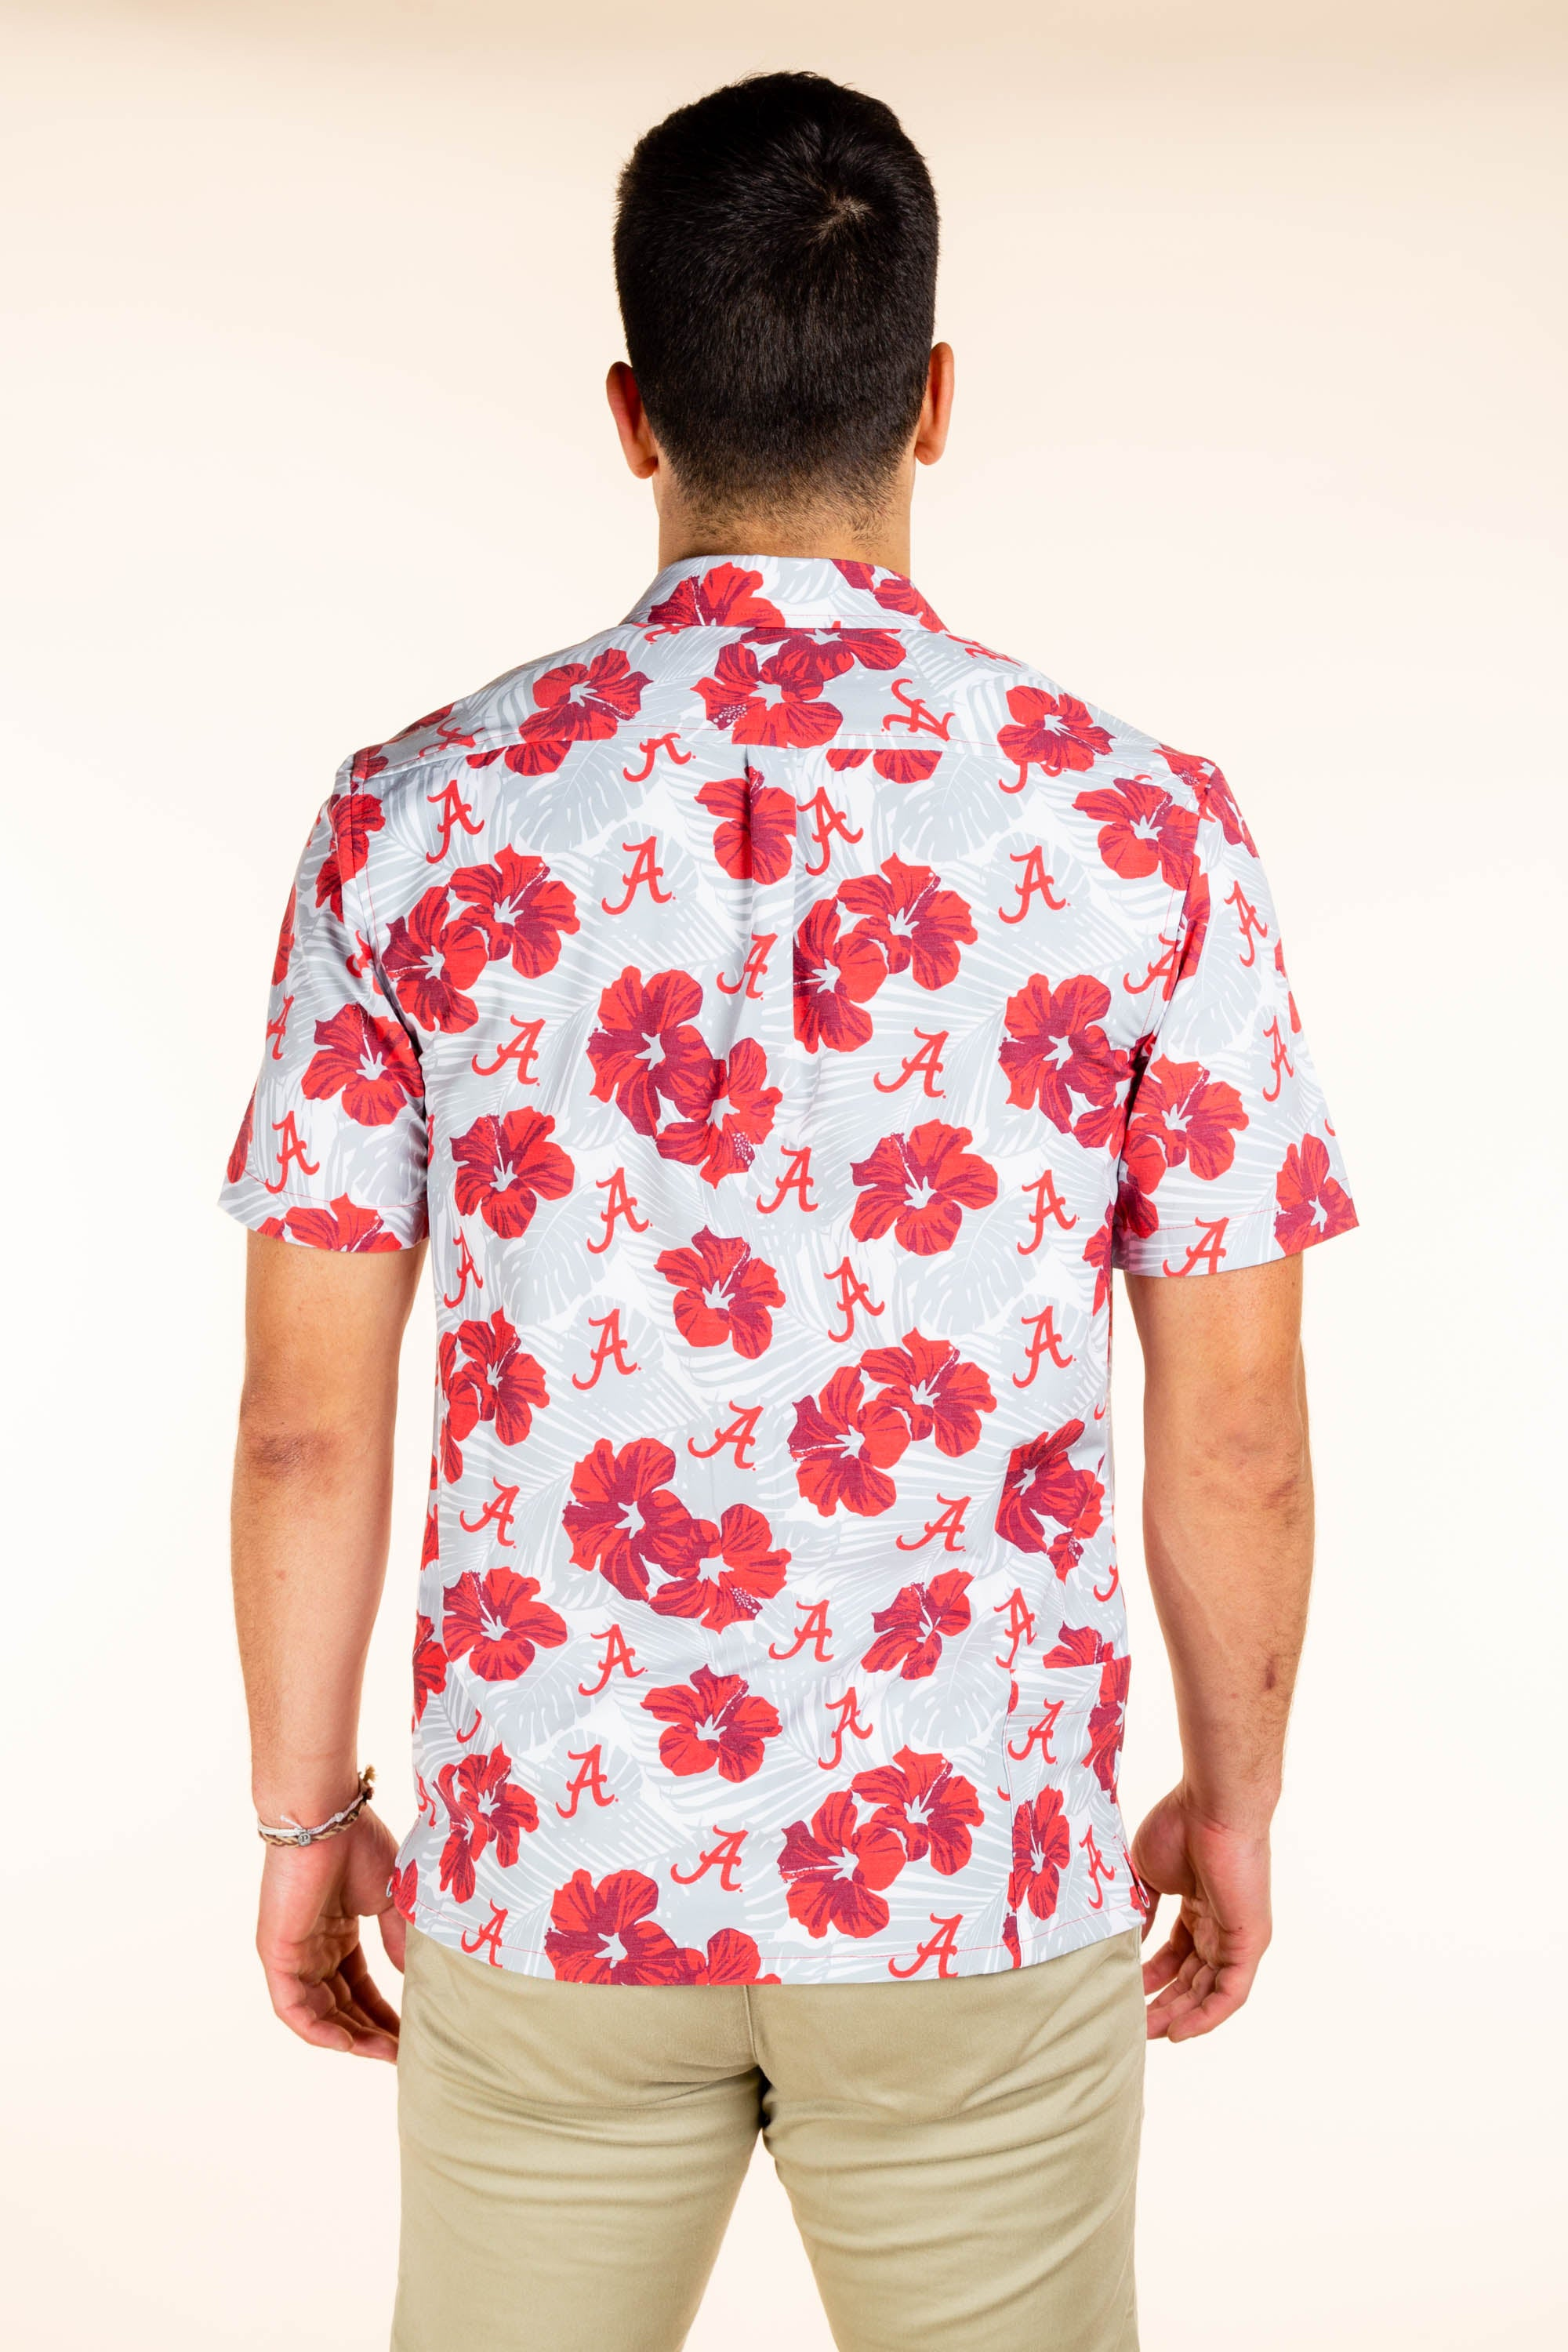 University of Alabama Men's Hawaiian Party Shirt